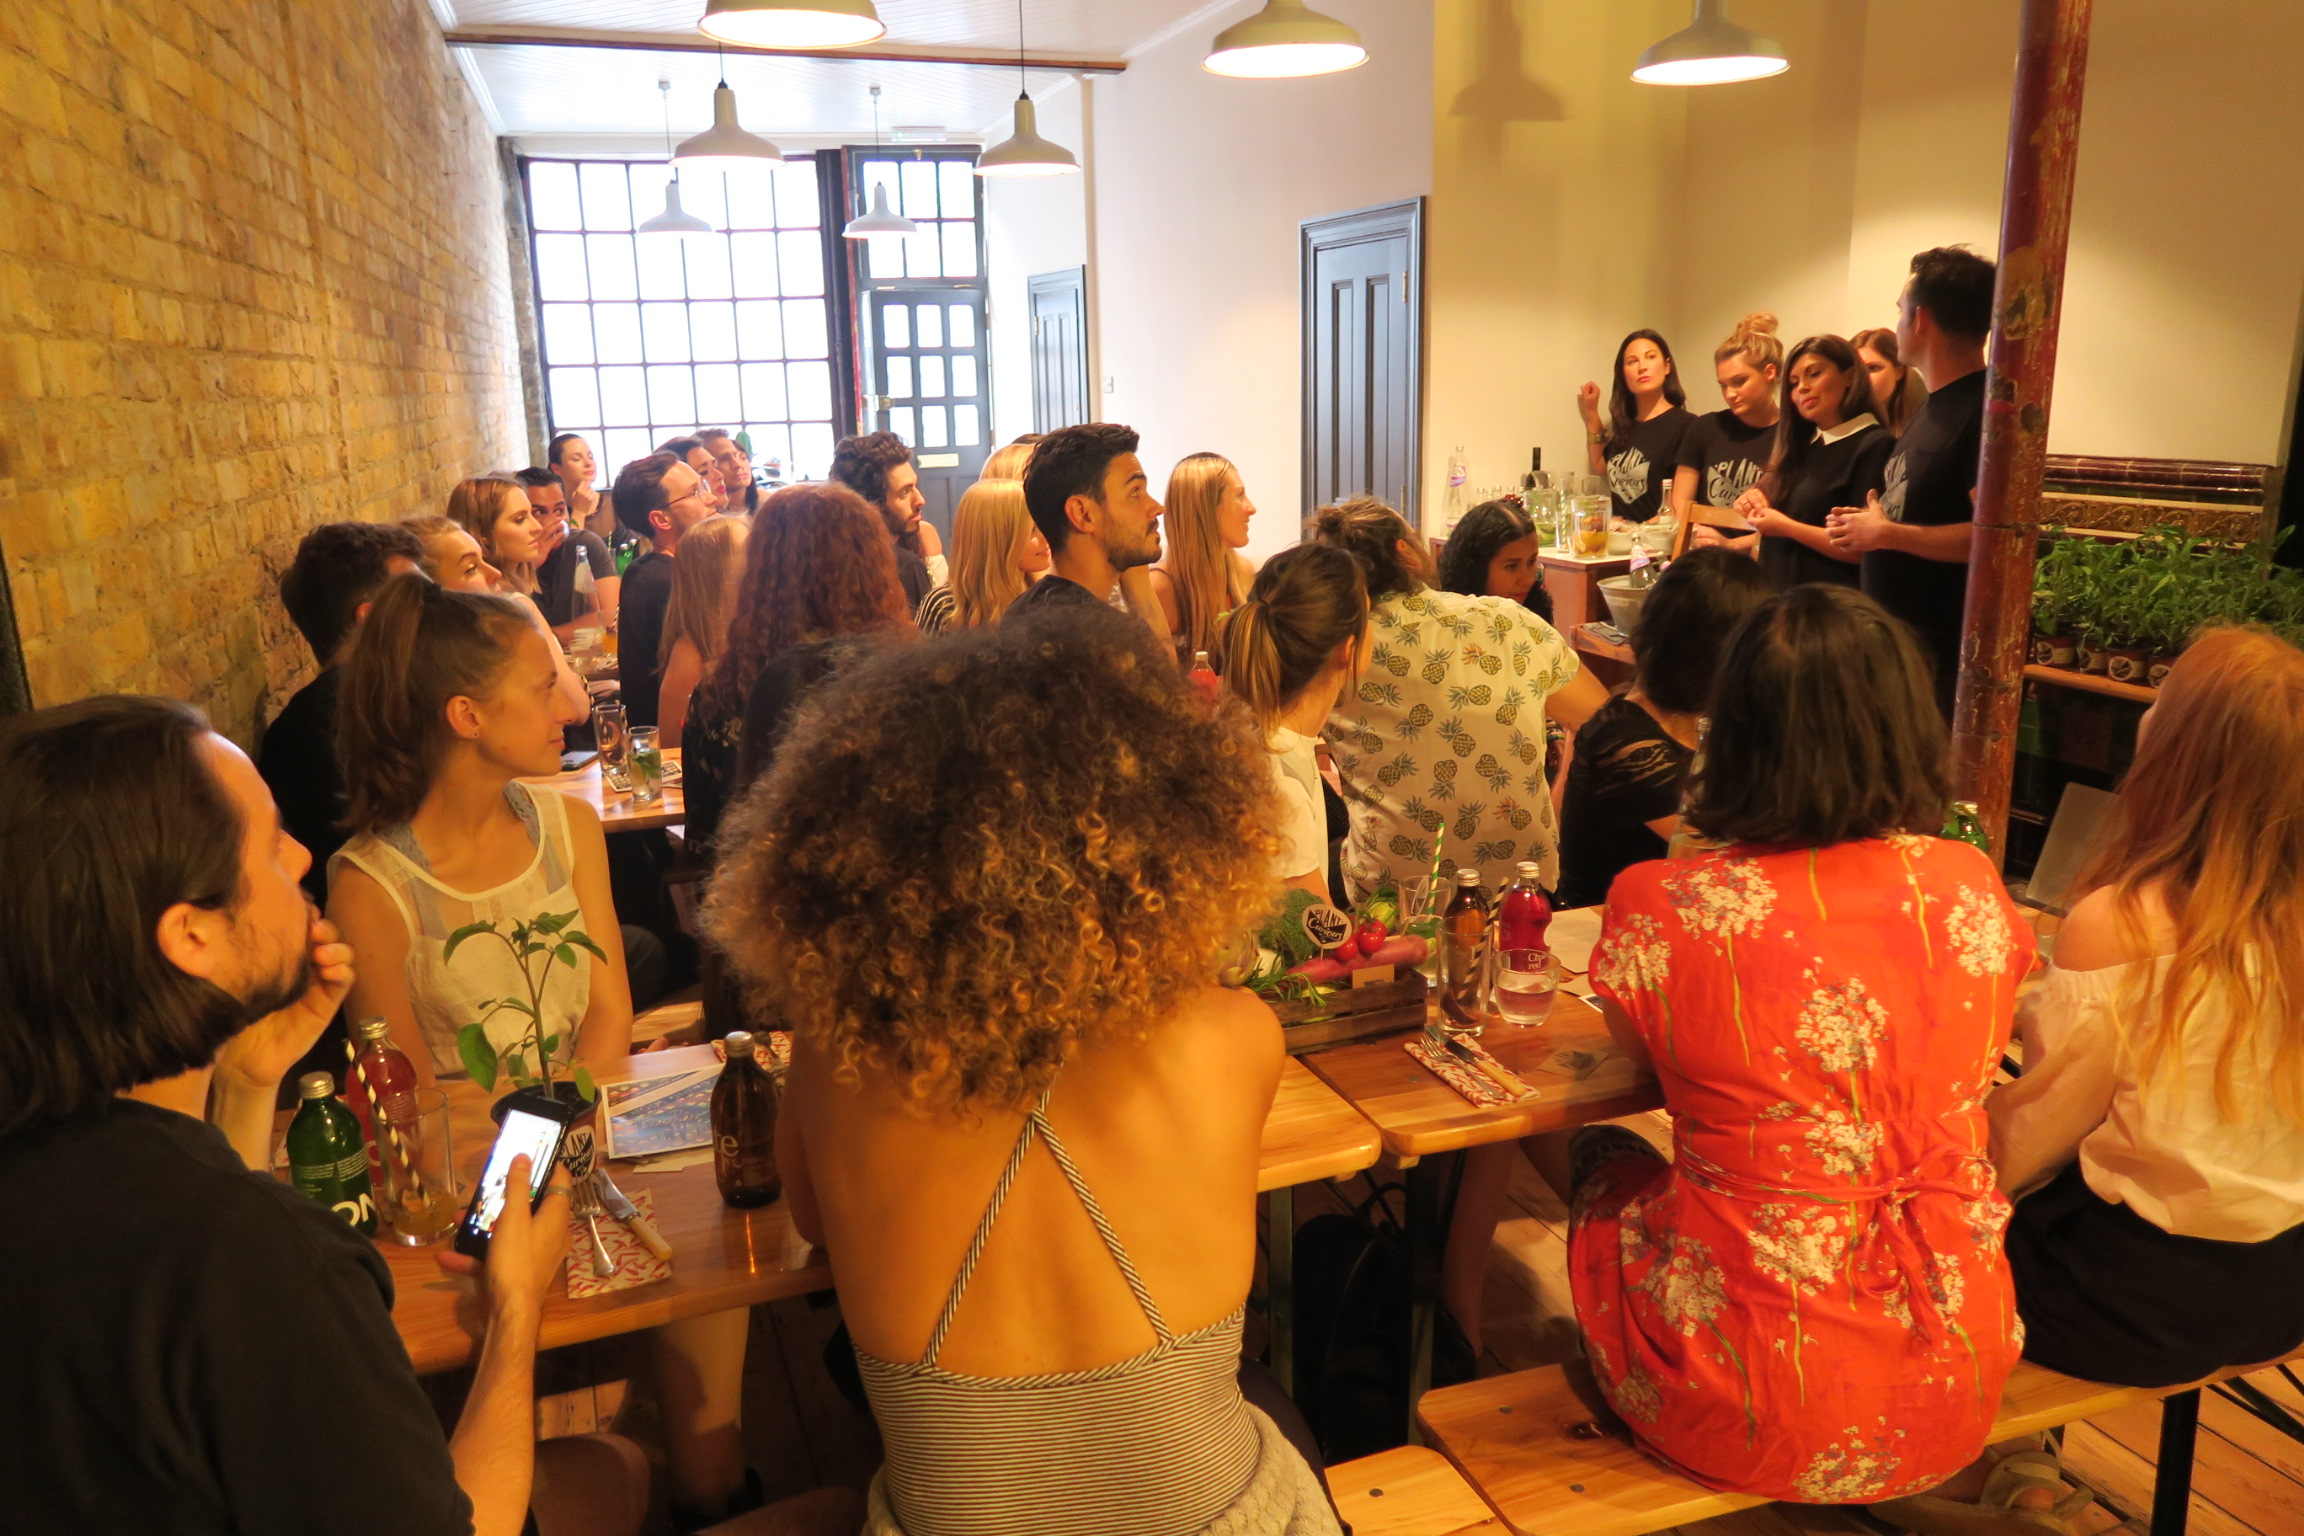 The evening event of the two part influencer event we organised for PlantCurious